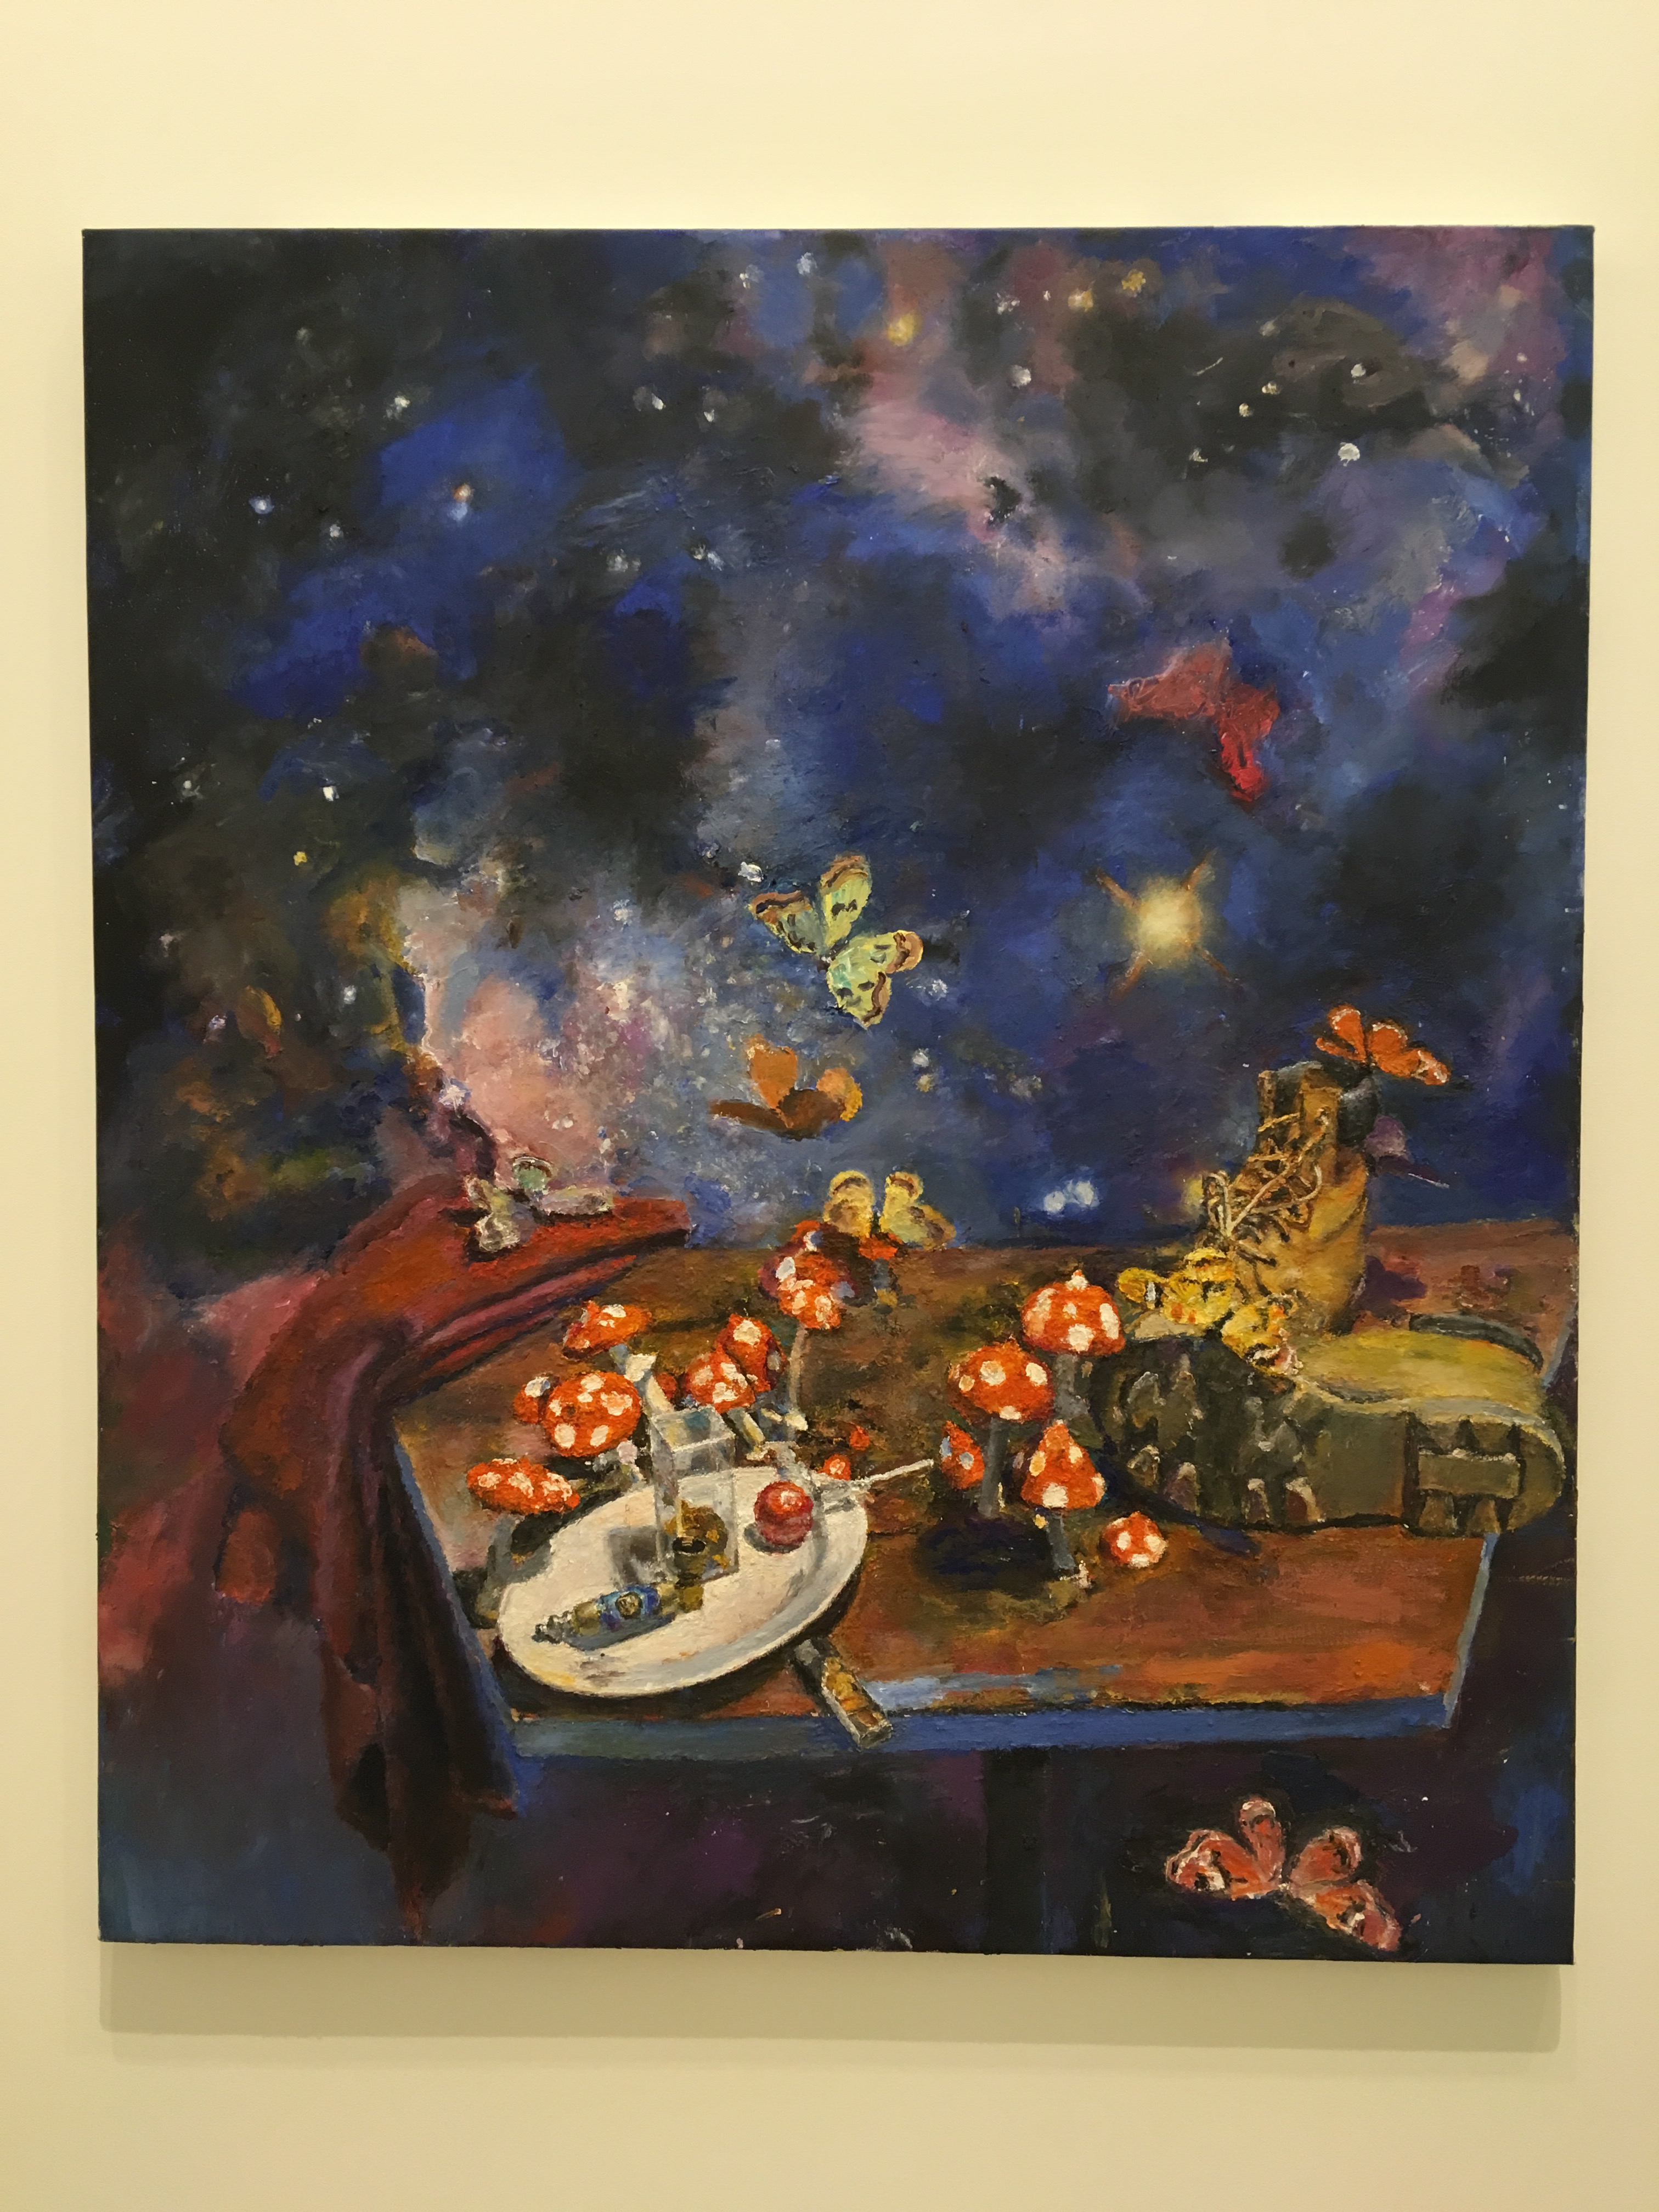 Oil painting by Jesse Edwards, still life oil painting of magic mushrooms and butterflies, oil paint on linen, Diane Rosenstein gallery, oil painting from life, contemporary still life art